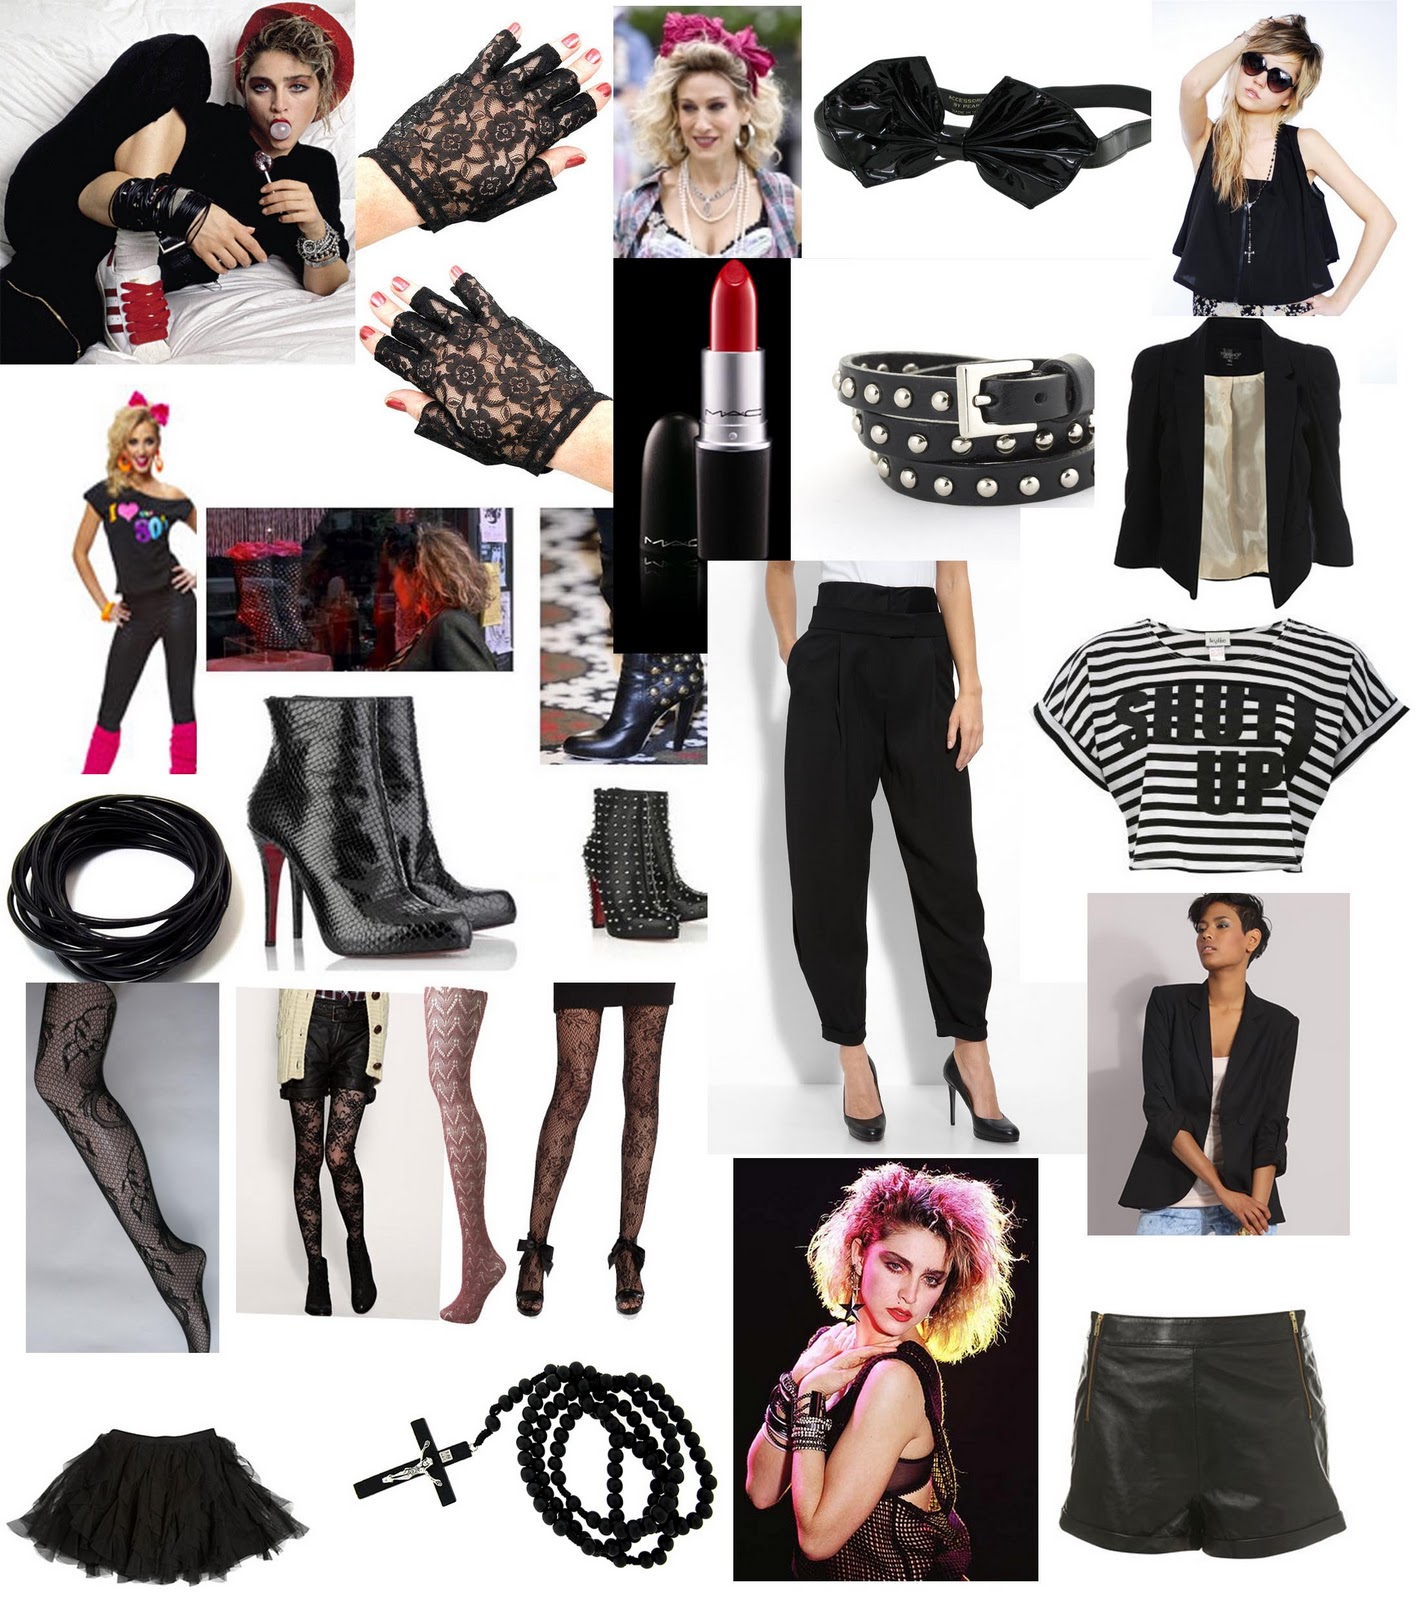 Desperately Seeking Susan  Mood Board  80s Fashion  Also some of these items are still in fashion to date so it will be so easy  to get our hands on most of the stuff we will need for the photo shoot